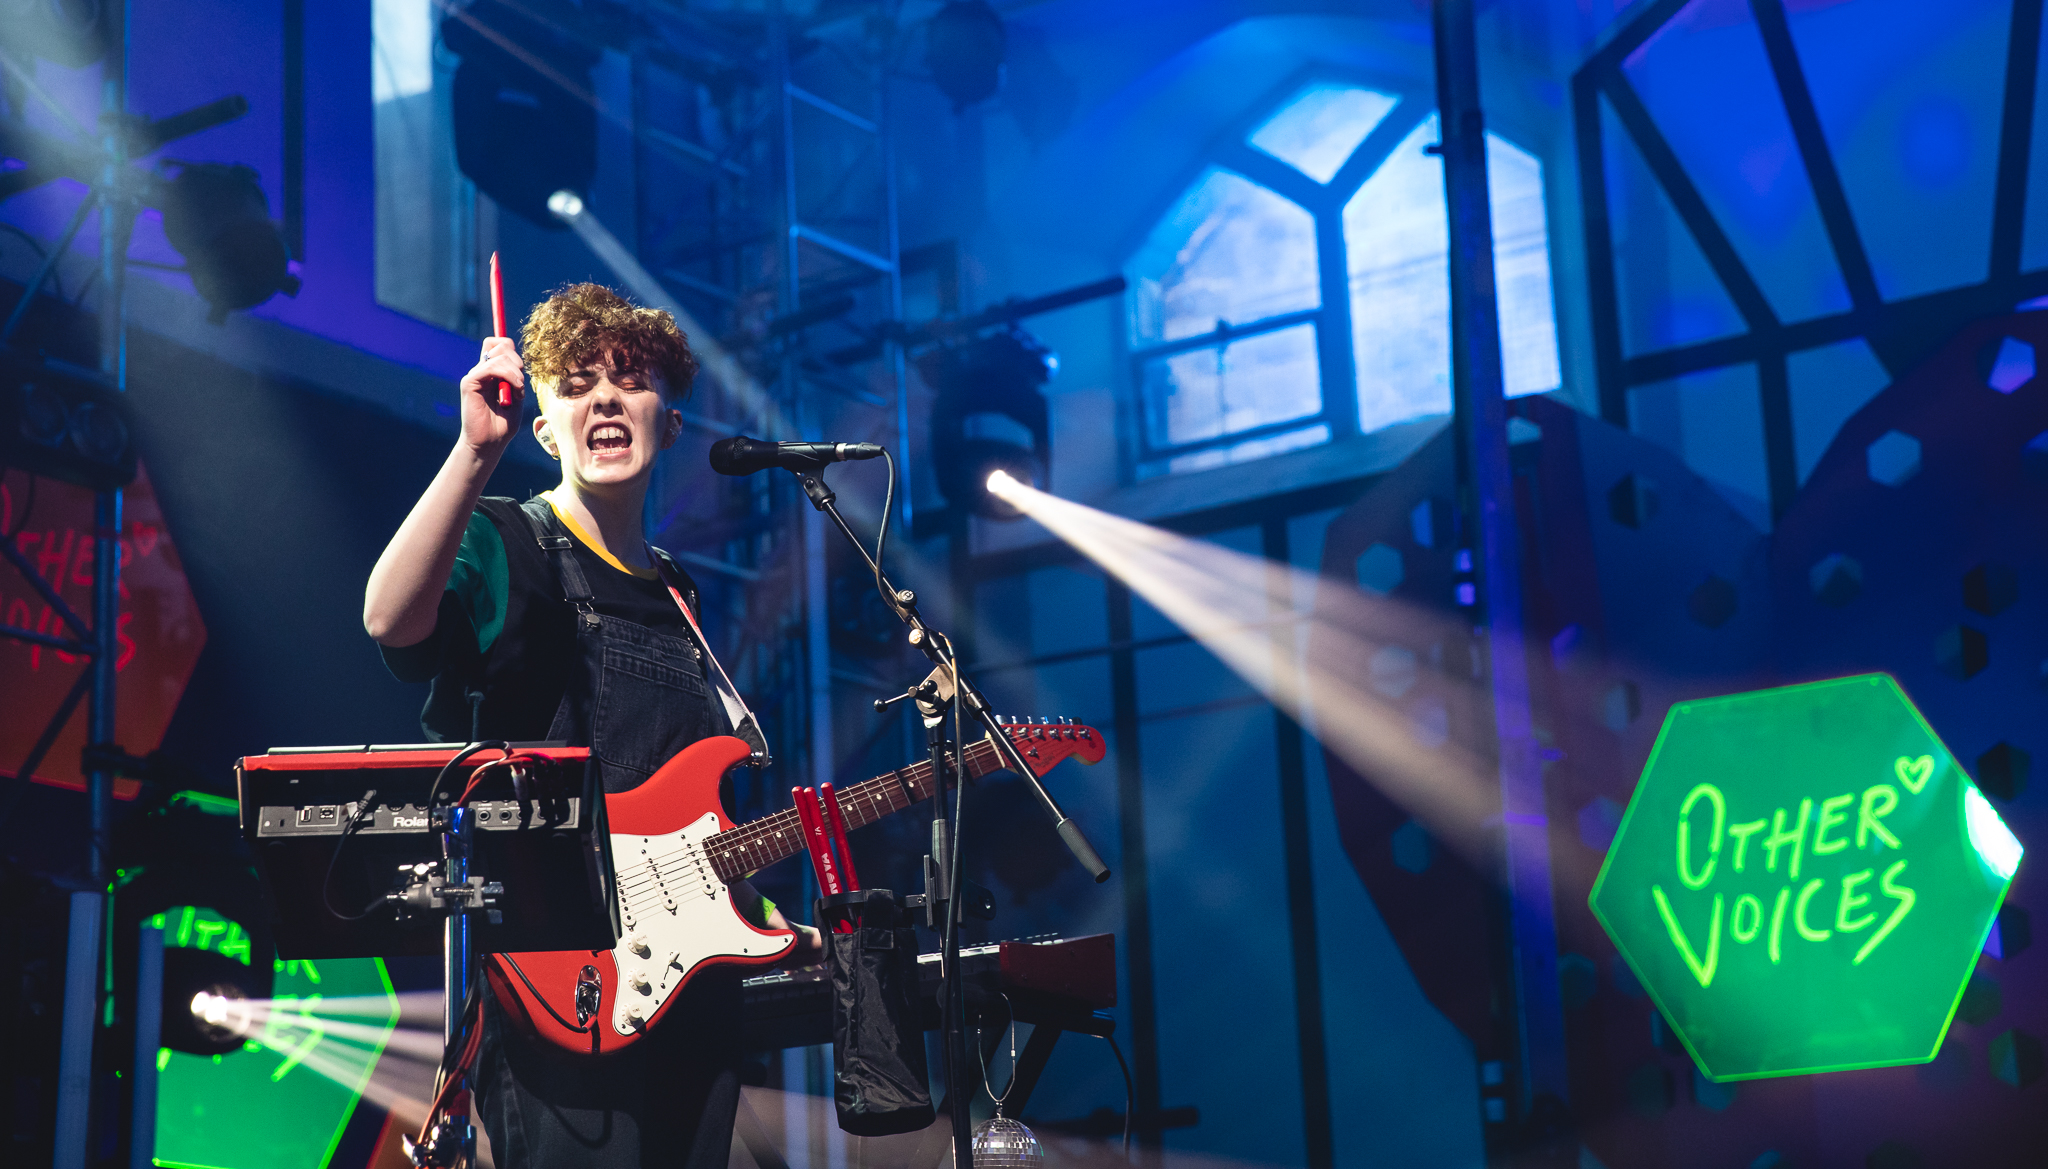 Other Voices Belfast: In Photos